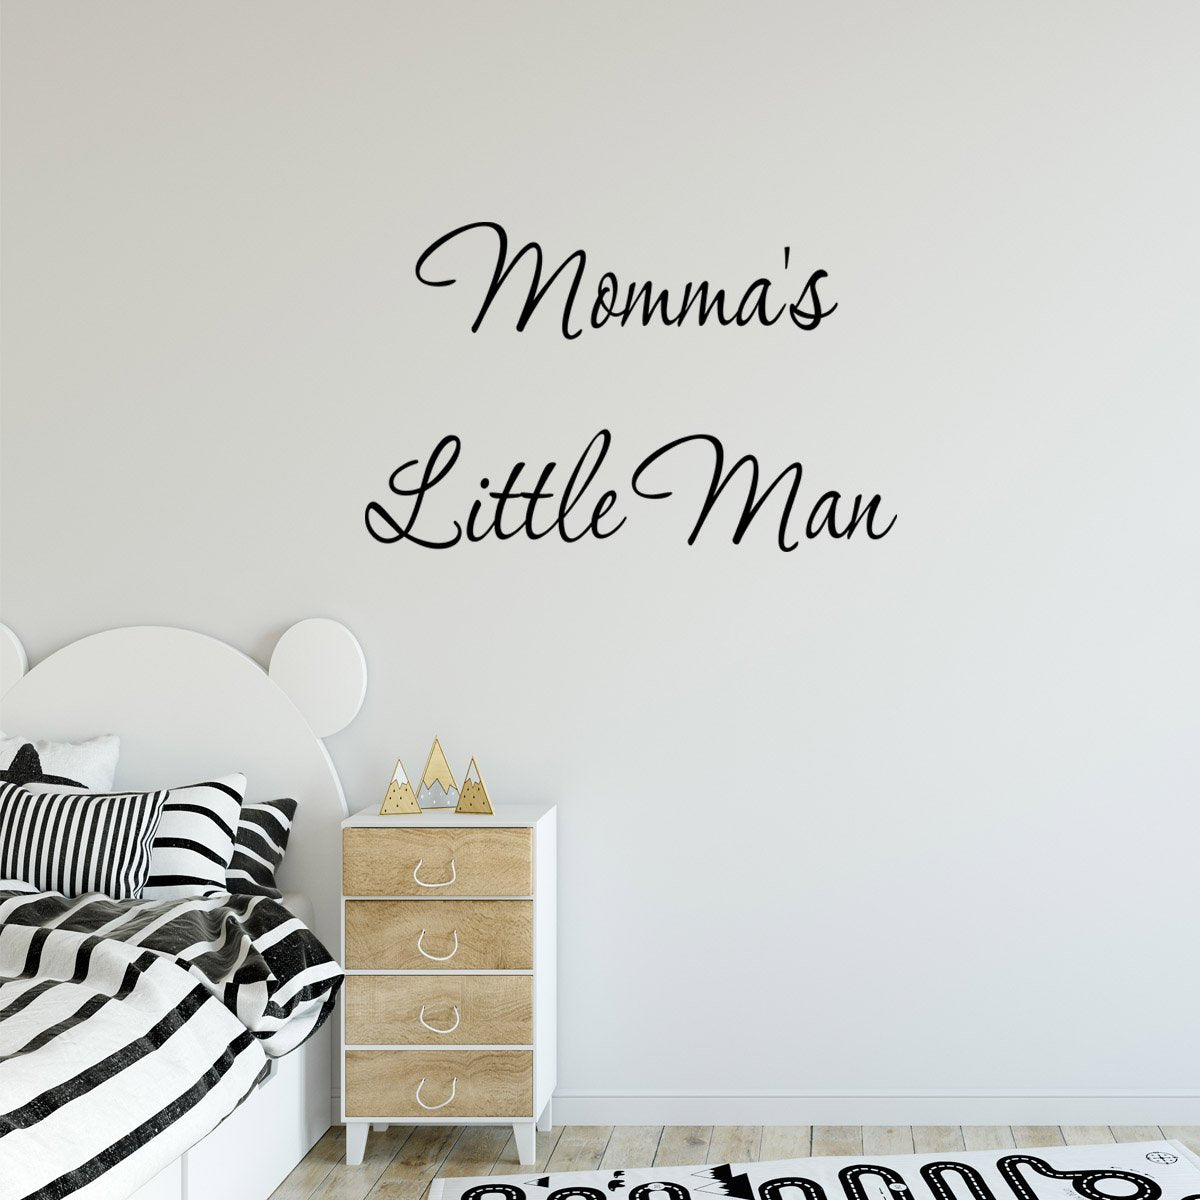 VWAQ Momma's Little Man Vinyl Wall Decal - VWAQ Vinyl Wall Art Quotes and Prints